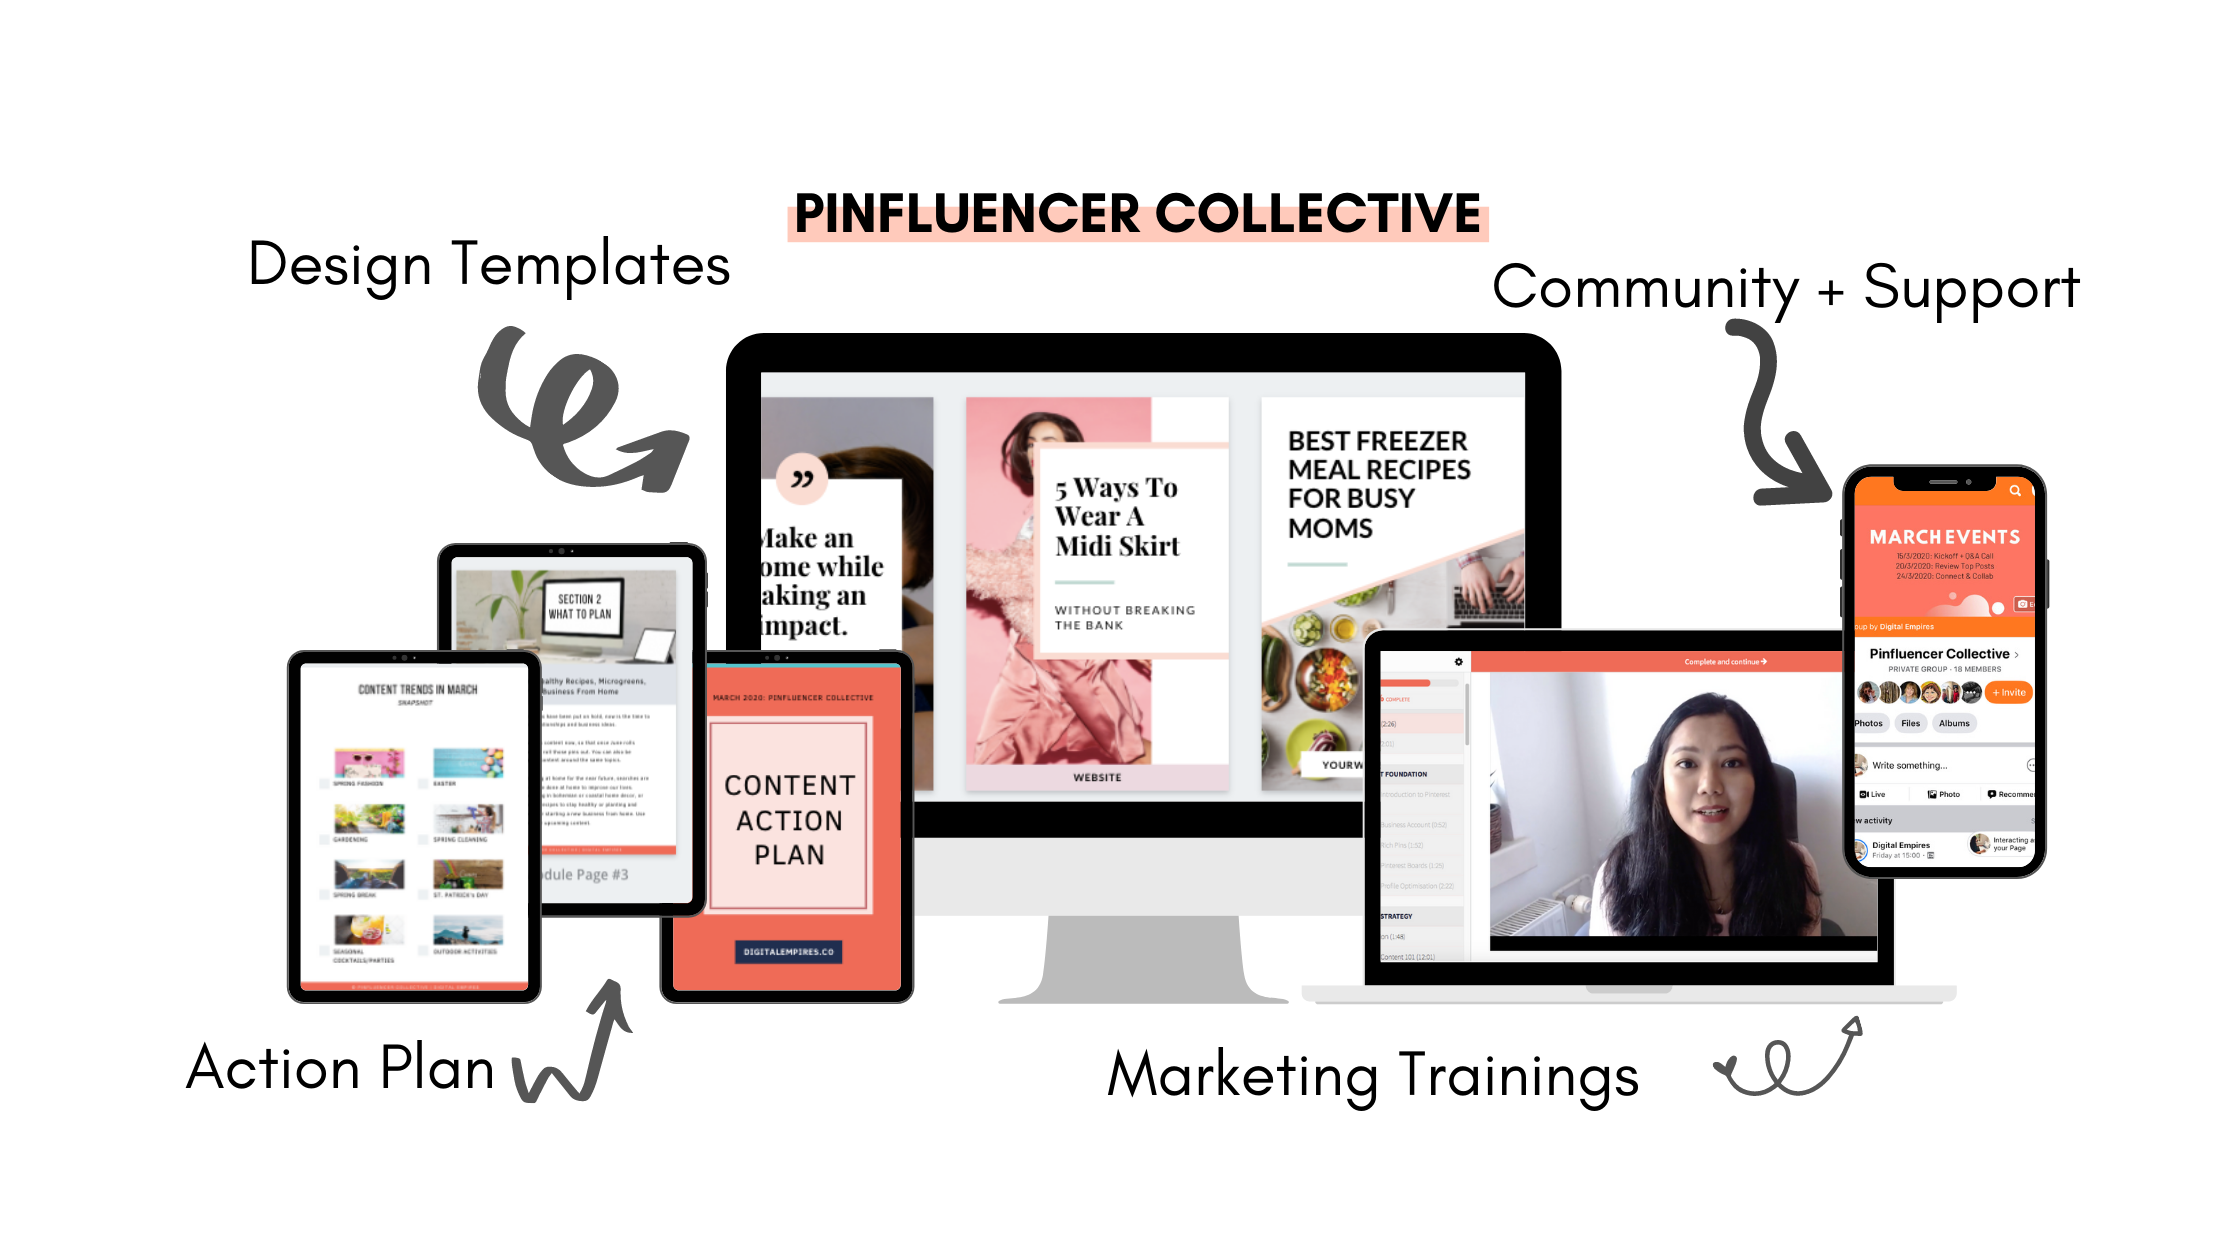 pinfluencer collective mockup